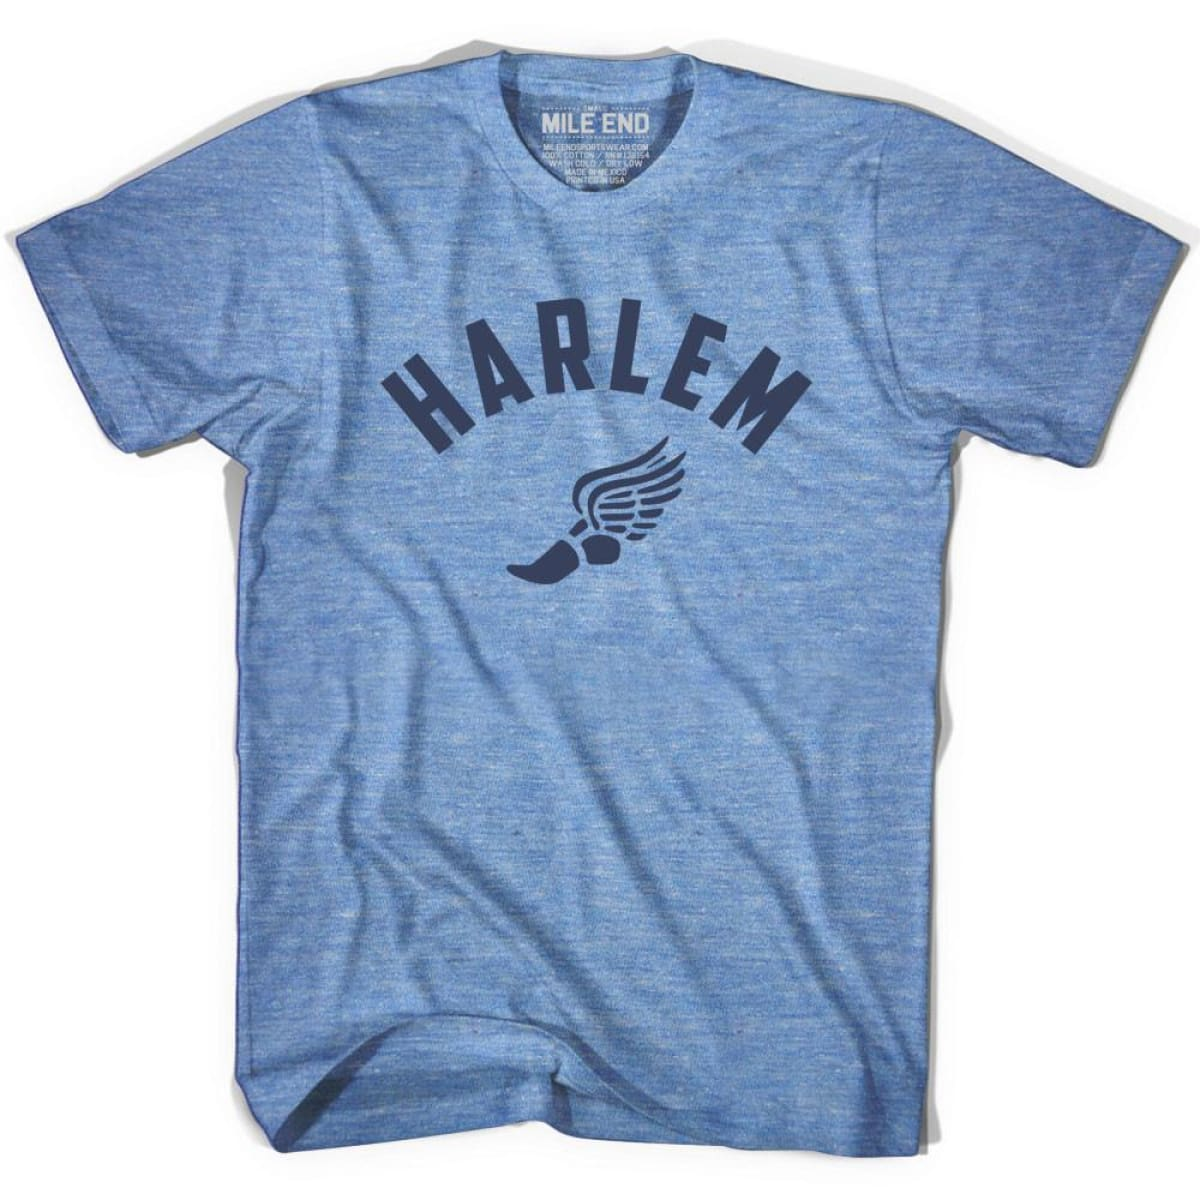 Harlem Track T-shirt - Athletic Blue / Adult X-Small - Mile End Track